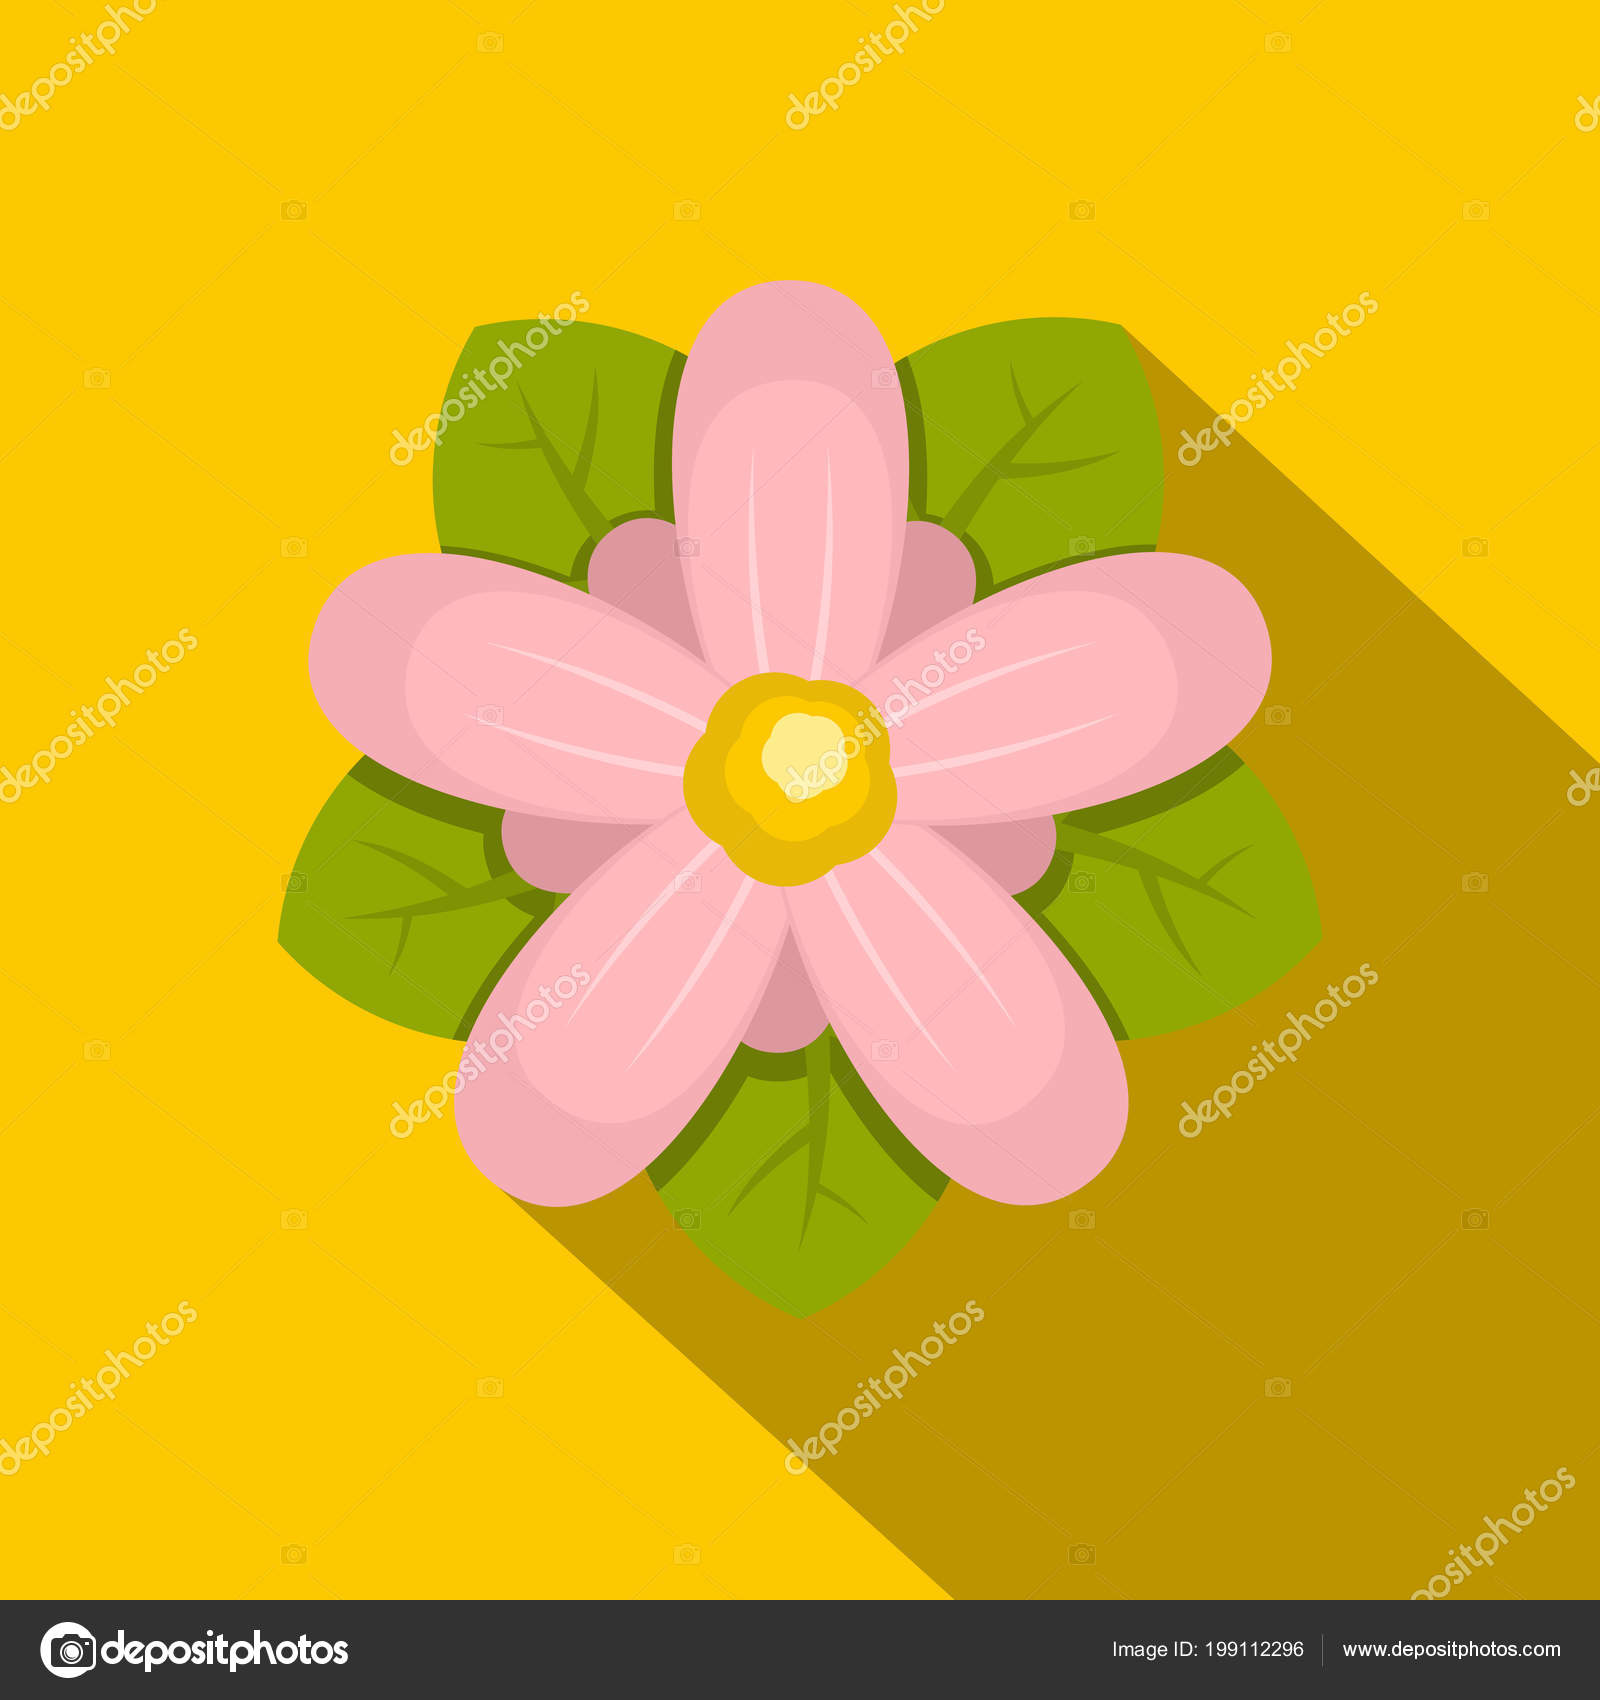 Pink flower icon flat style stock vector ylivdesign 199112296 pink flower icon flat style stock vector mightylinksfo